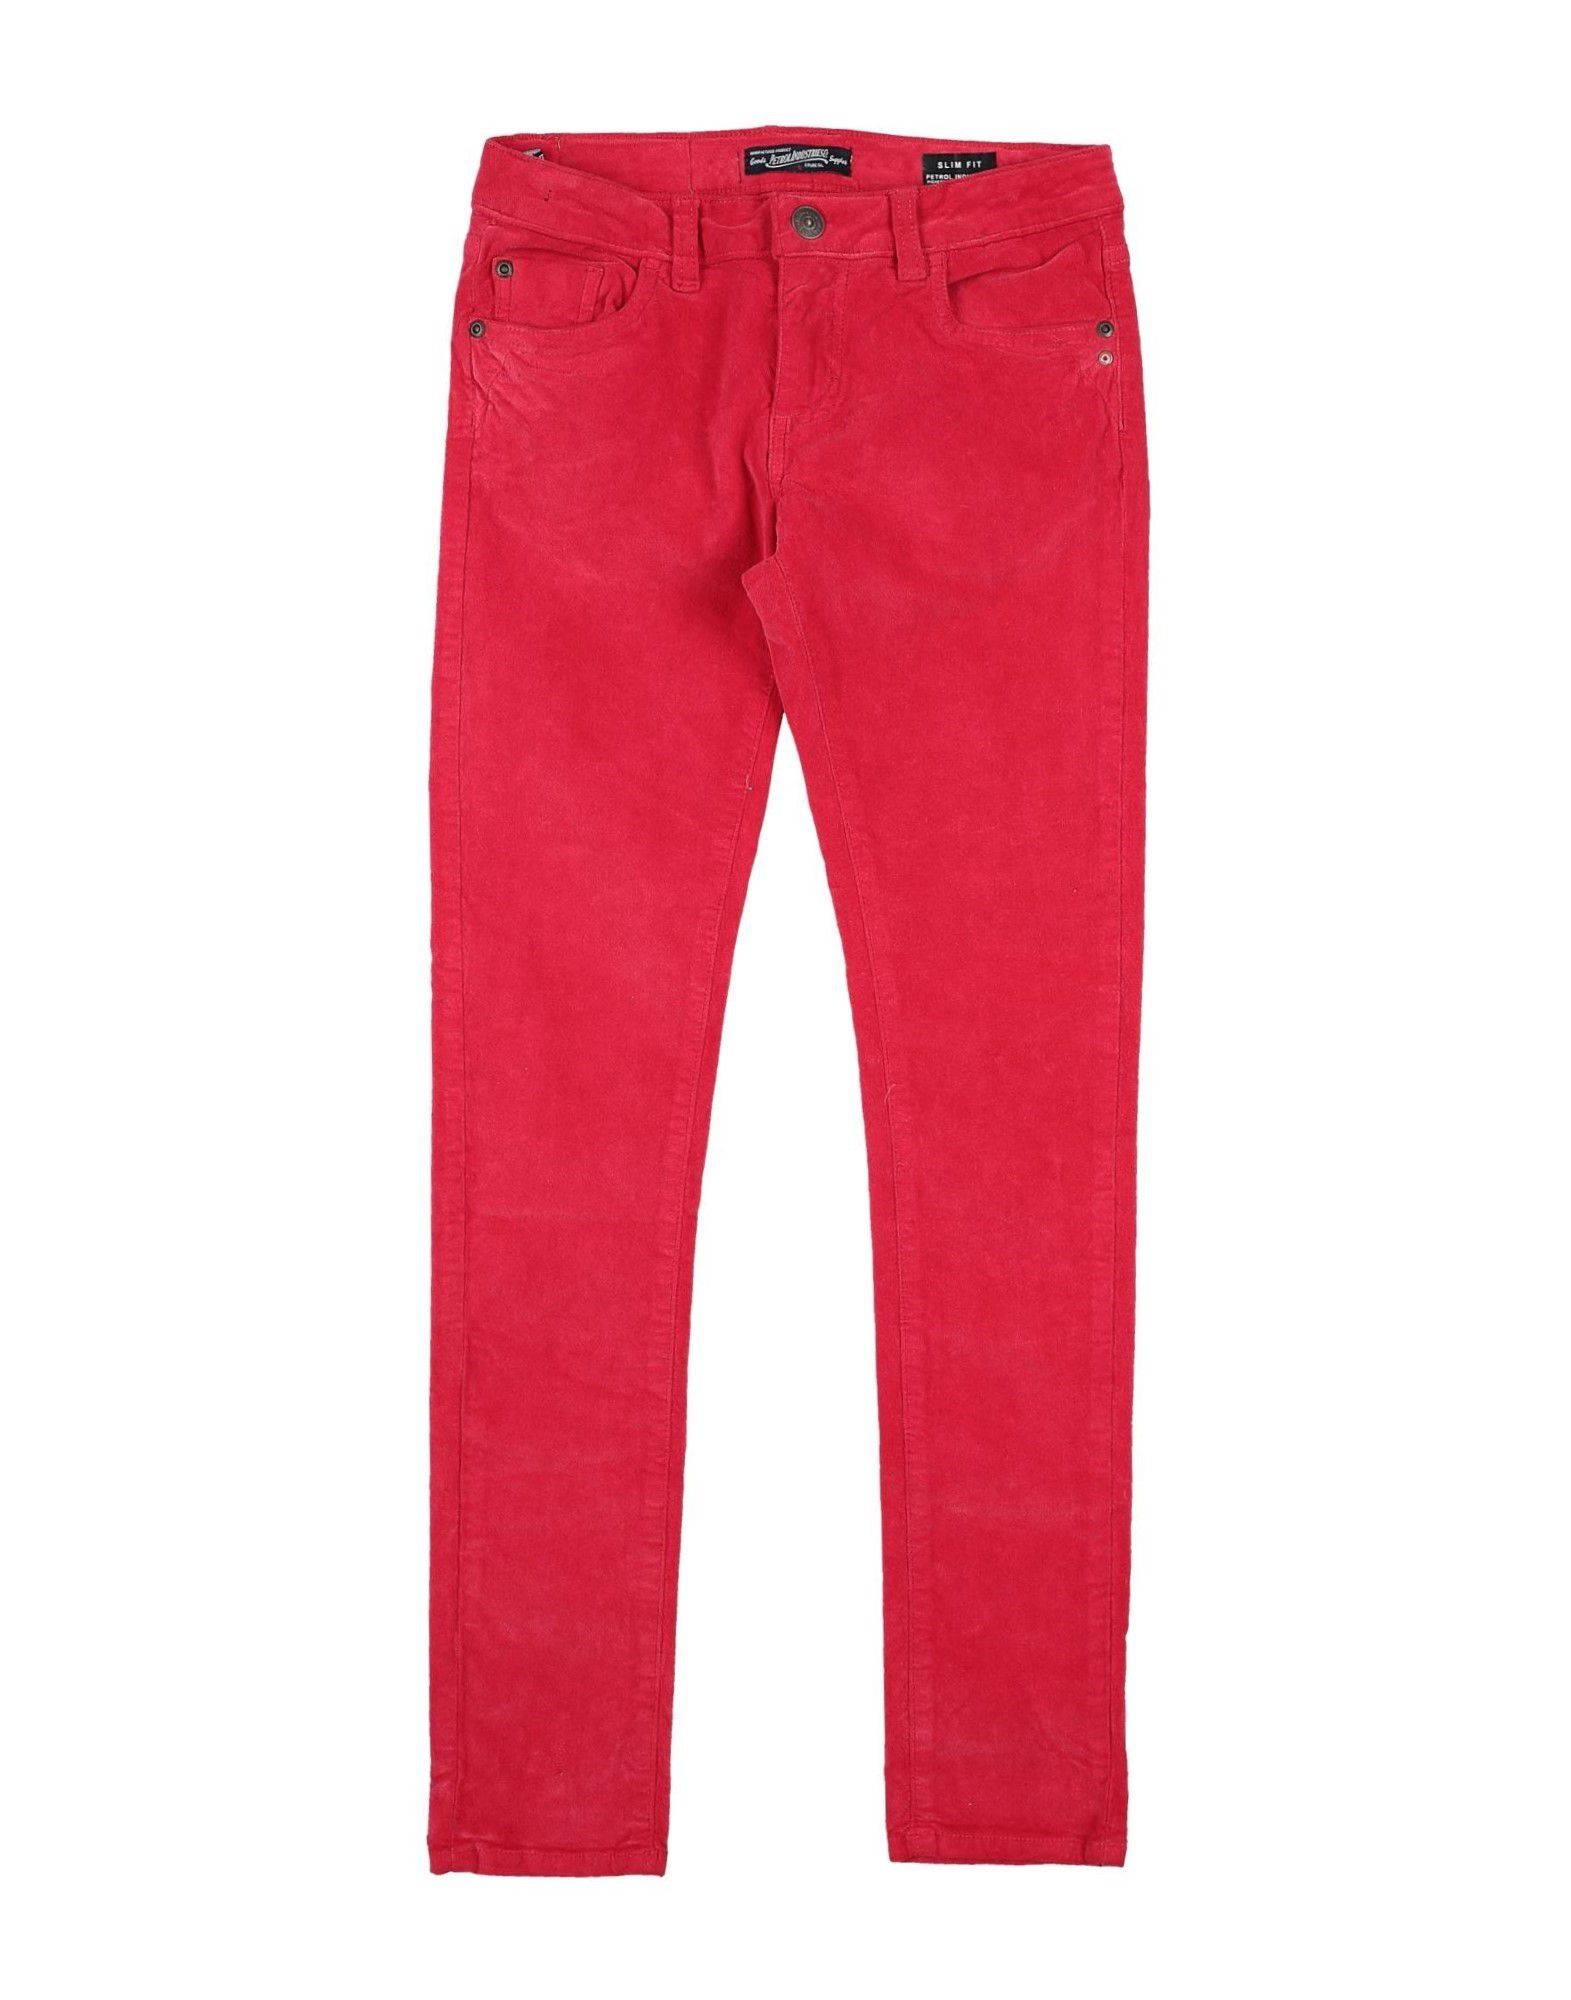 Petrol Industries Co. Kids' Casual Pants In Red